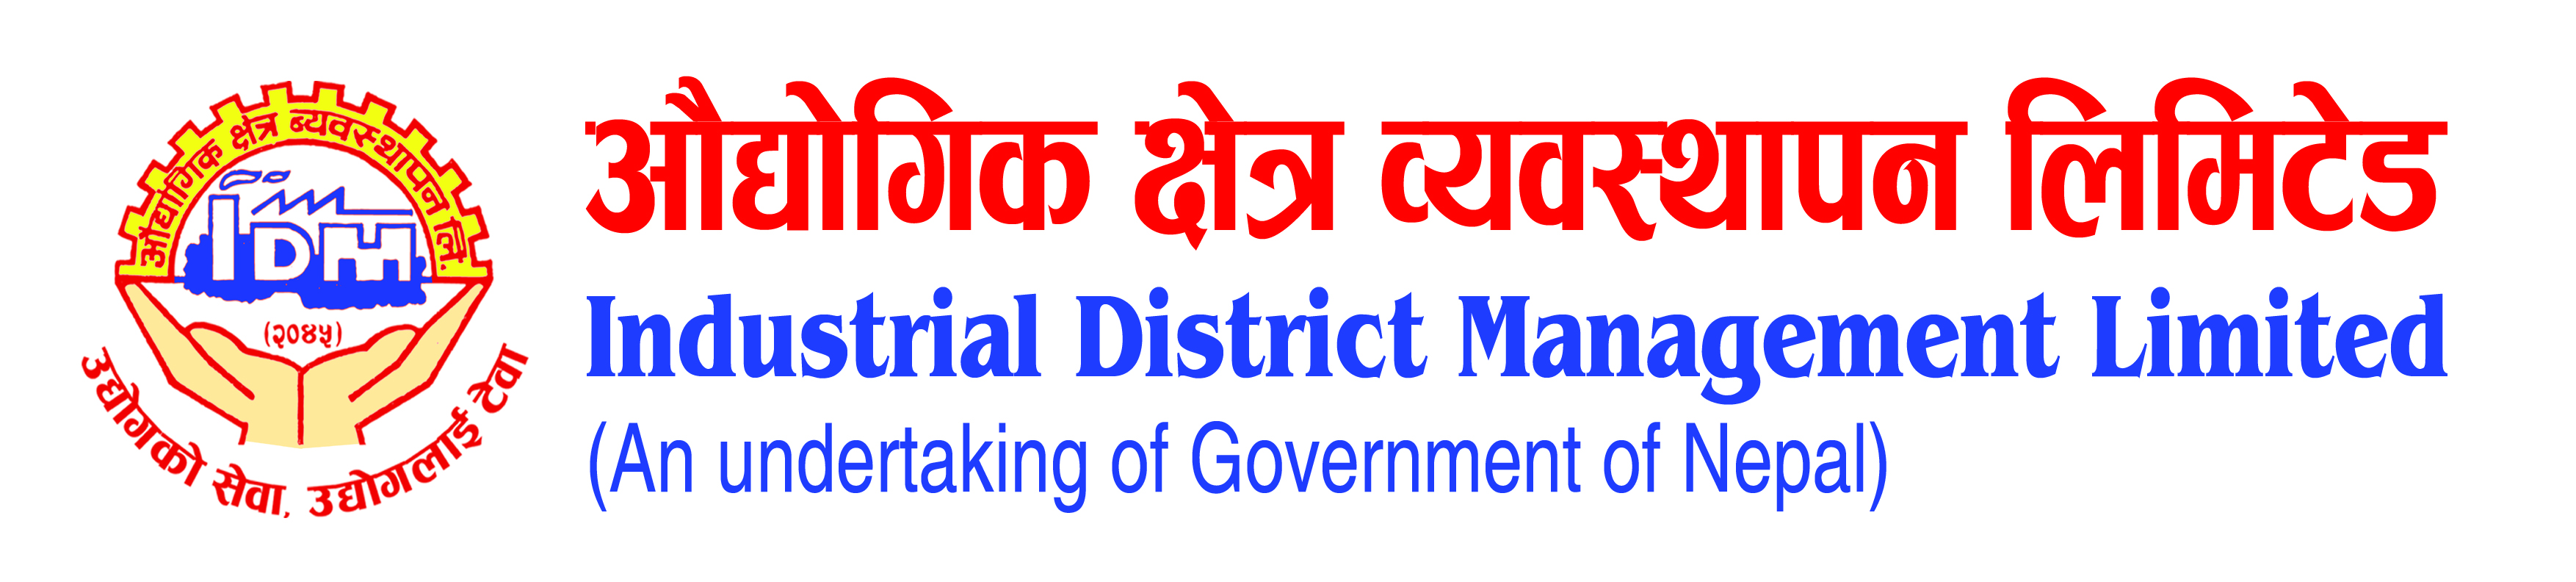 Industrial District Management Limited